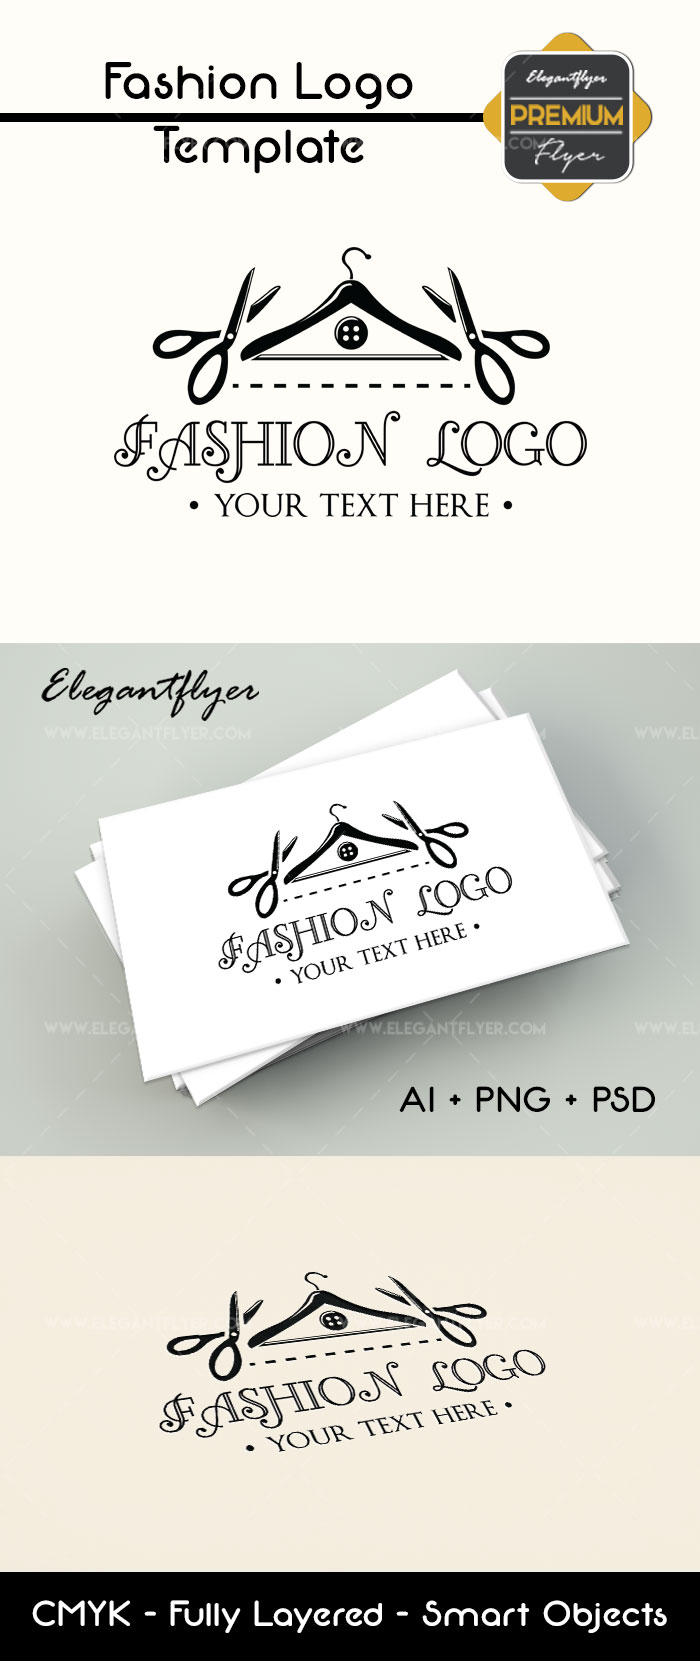 Fashion – Premium Logo Template